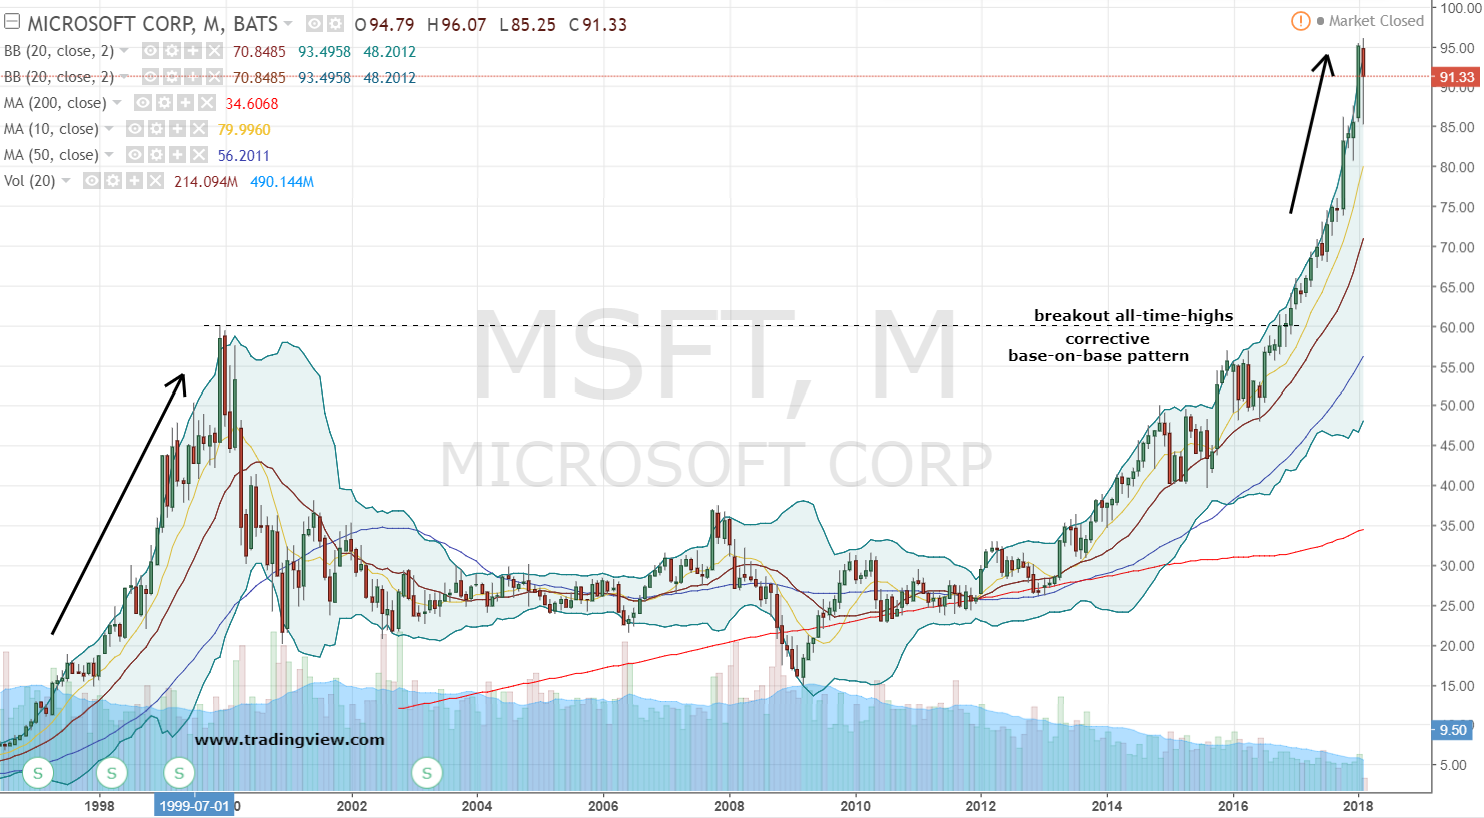 Barclays Reiterates $95.00 Price Target for Microsoft (NASDAQ:MSFT)